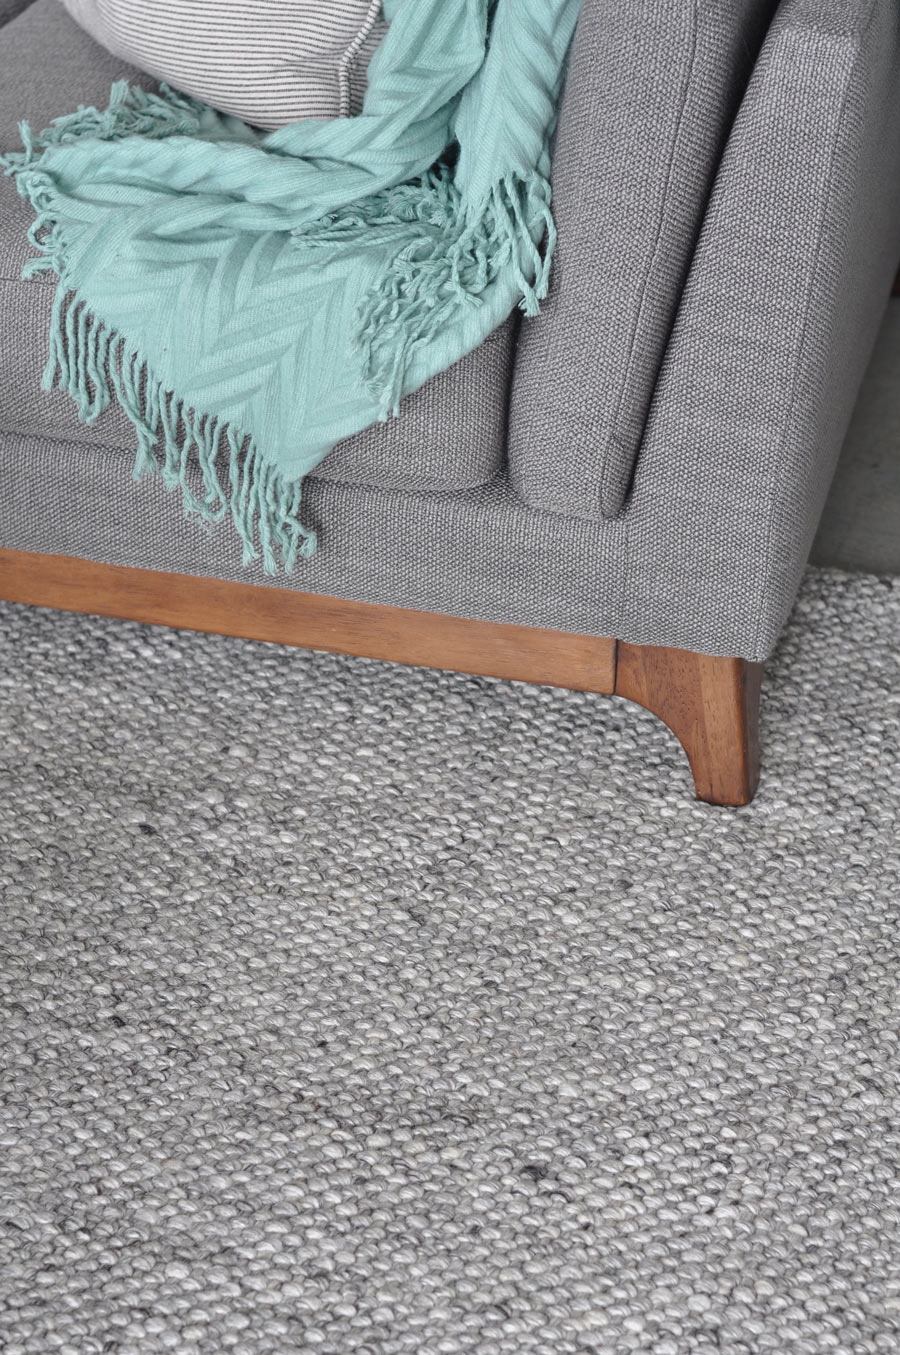 Texa rug in fog gray from Article.com